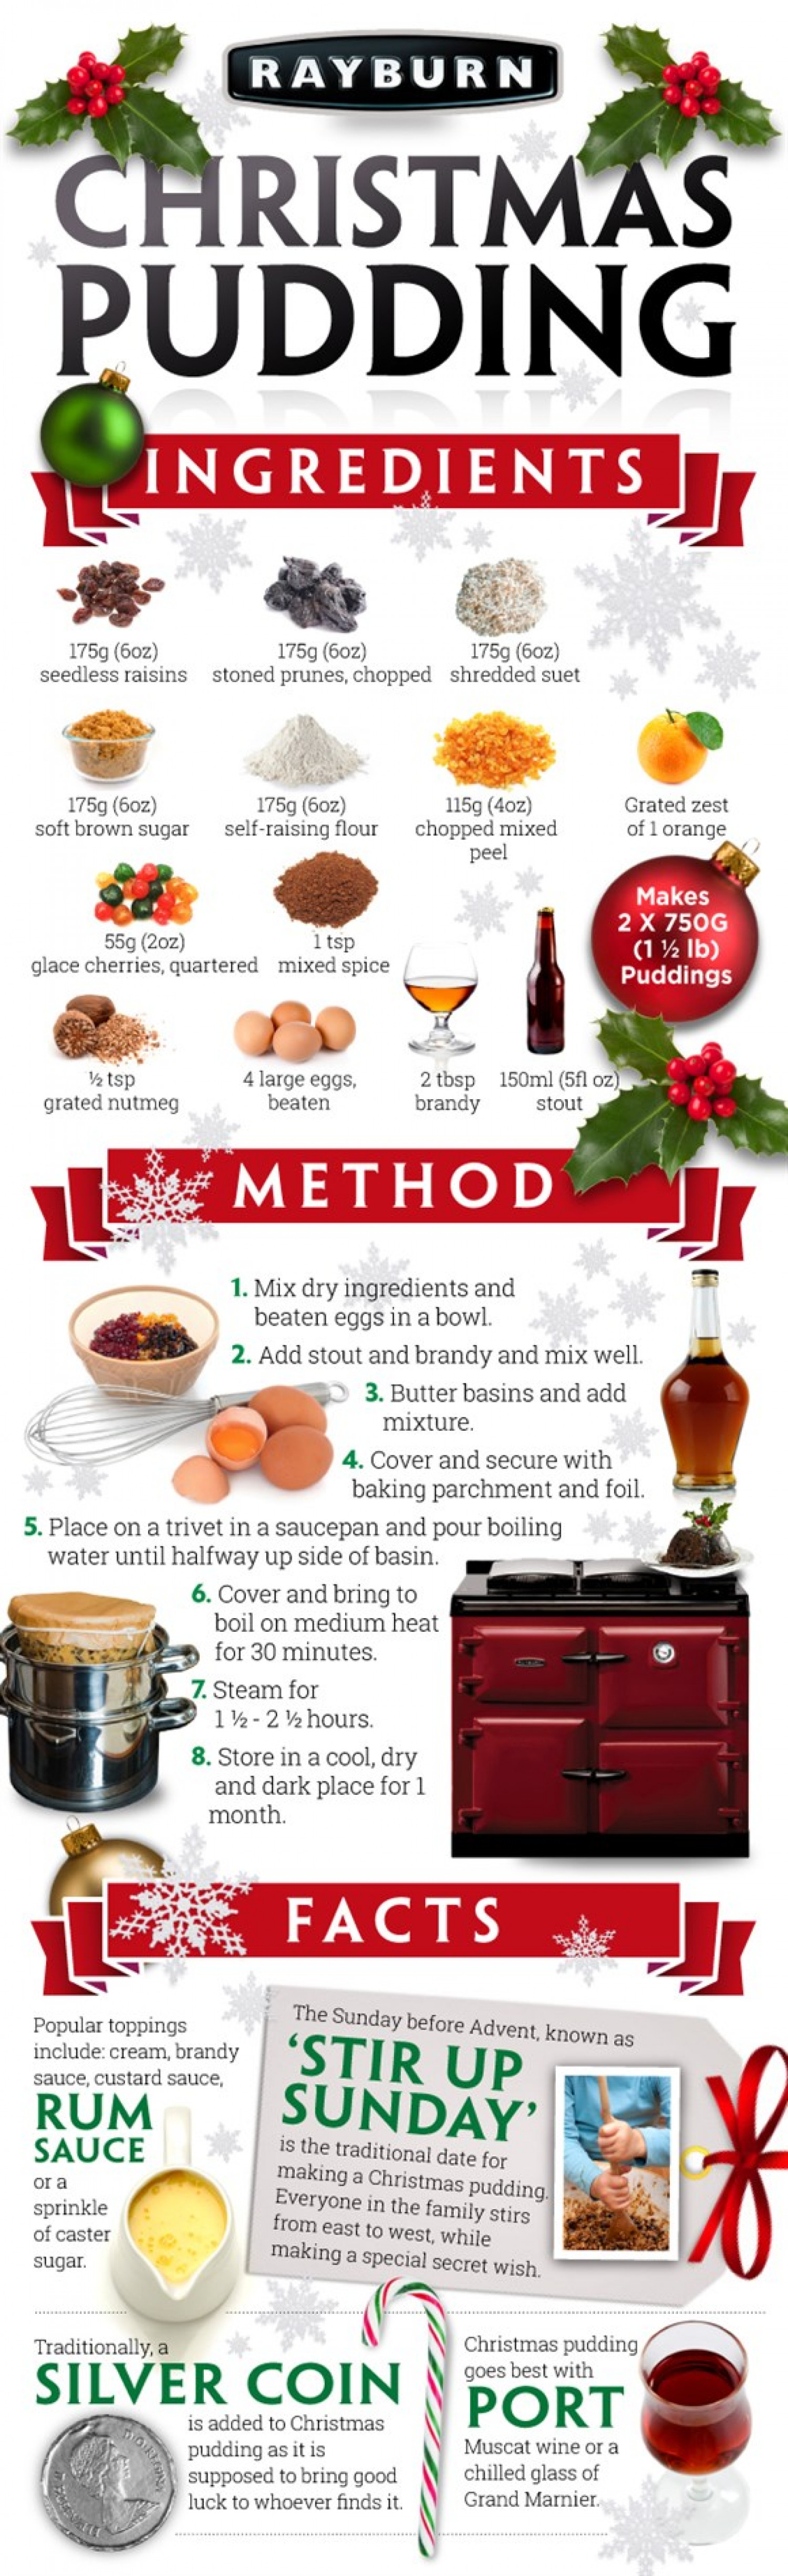 Rayburn Christmas Pudding Recipe Infographic